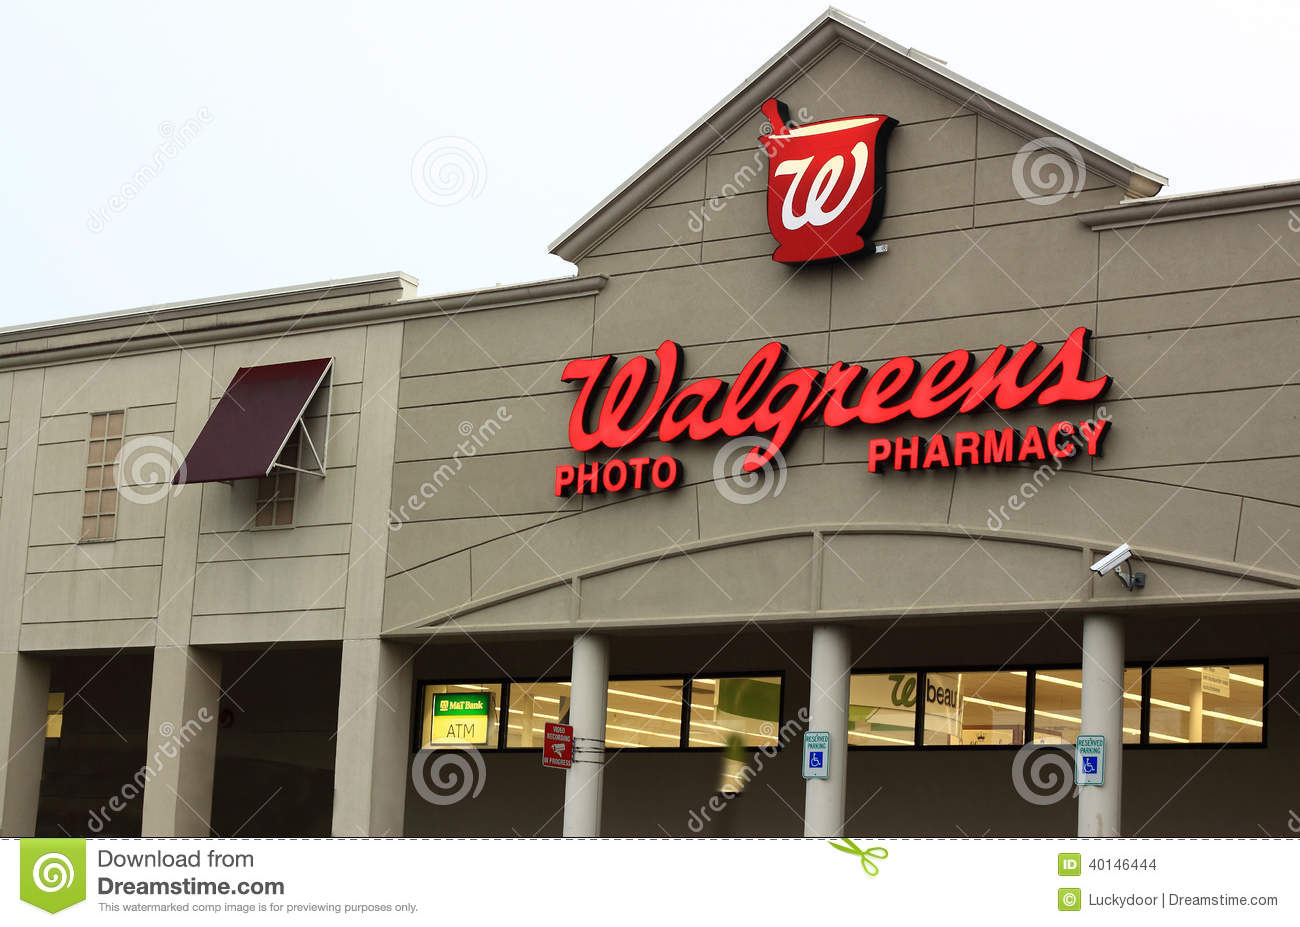 the domain store map with Stock Images Walgreens Pharmacy Store Retail Chain Stores Number One Usa Image40146444 on 428616089512139990 furthermore Editorial Stock Image Buildings Magic Kingdom Walt Disney World Orlando Florida Store Connected To Main Street Confectionery Inside Image43204504 additionally Royalty Free Stock Photo Casio Watches Counter Wanda  mercial Street Amoy City China Image33457115 in addition Stock Photography Movie Folder Films Spool D Icon White Background Image33504012 likewise Stock Photography Male Pharmacist Working Pharmacy Image29665942.